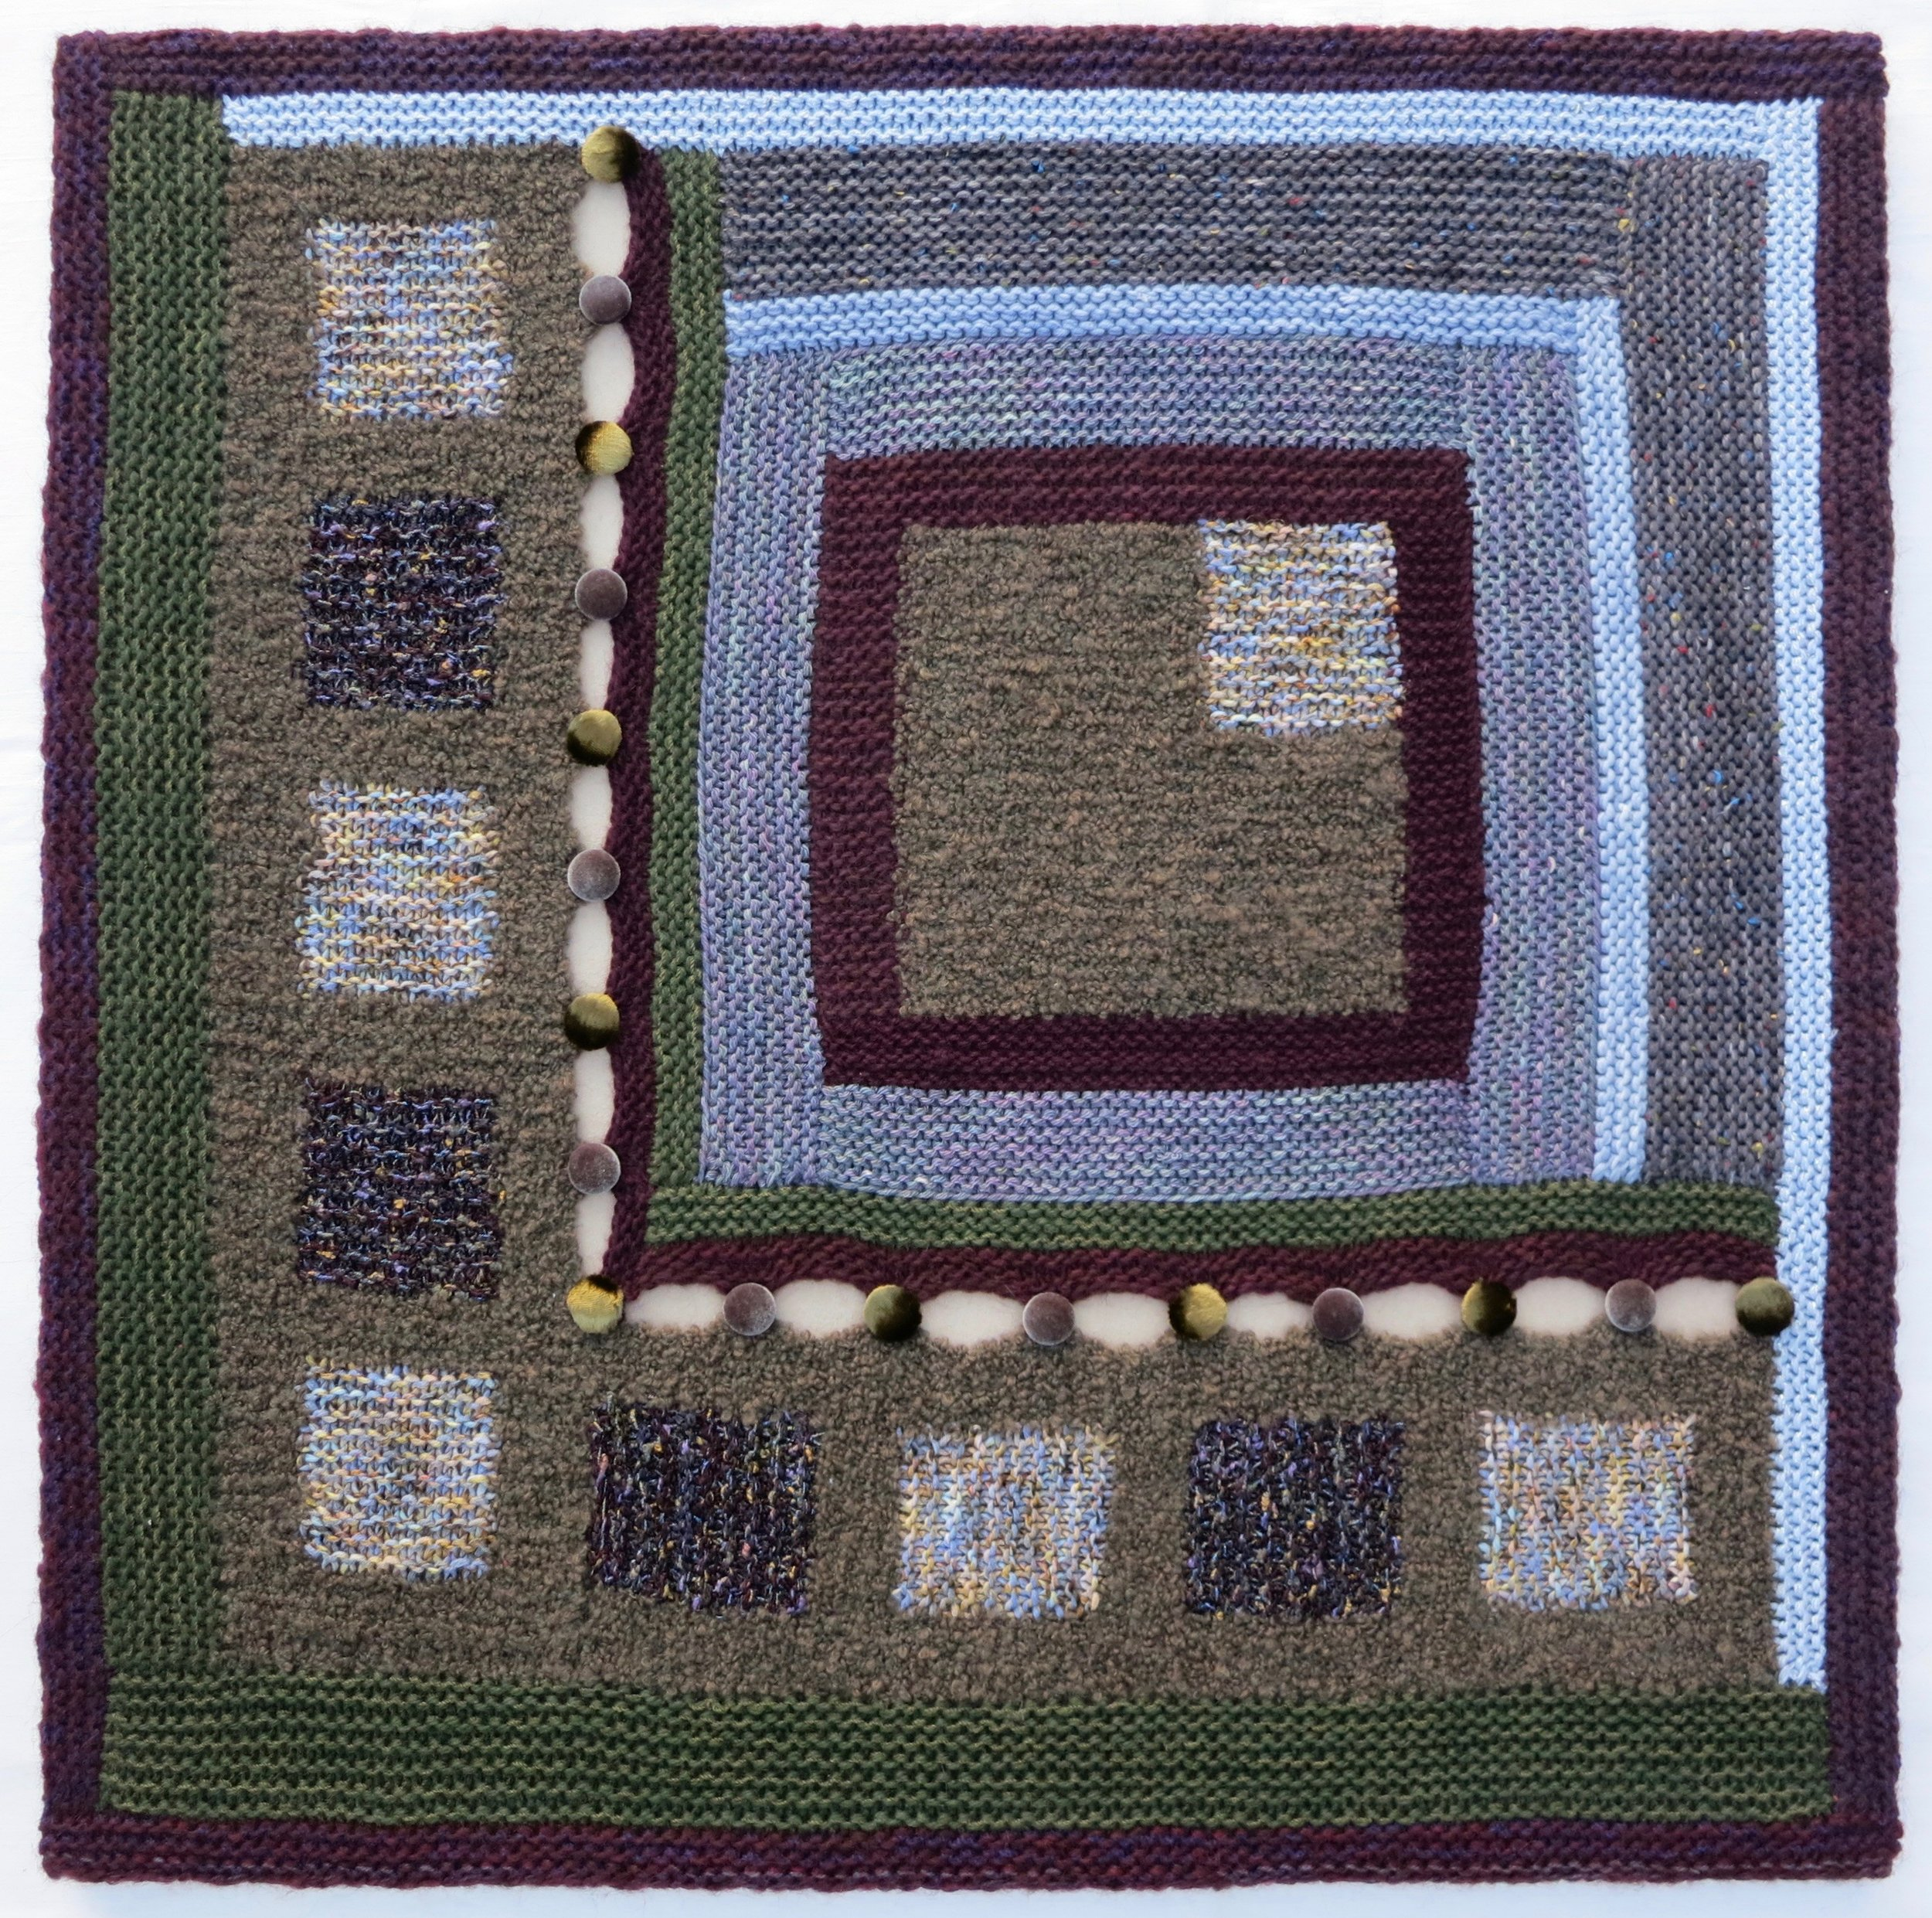 """Buttoned Up   2014 30"""" x 30"""" Wool and novelty yarn handknit, fabric covered buttons sewn. Stretcher mounted."""